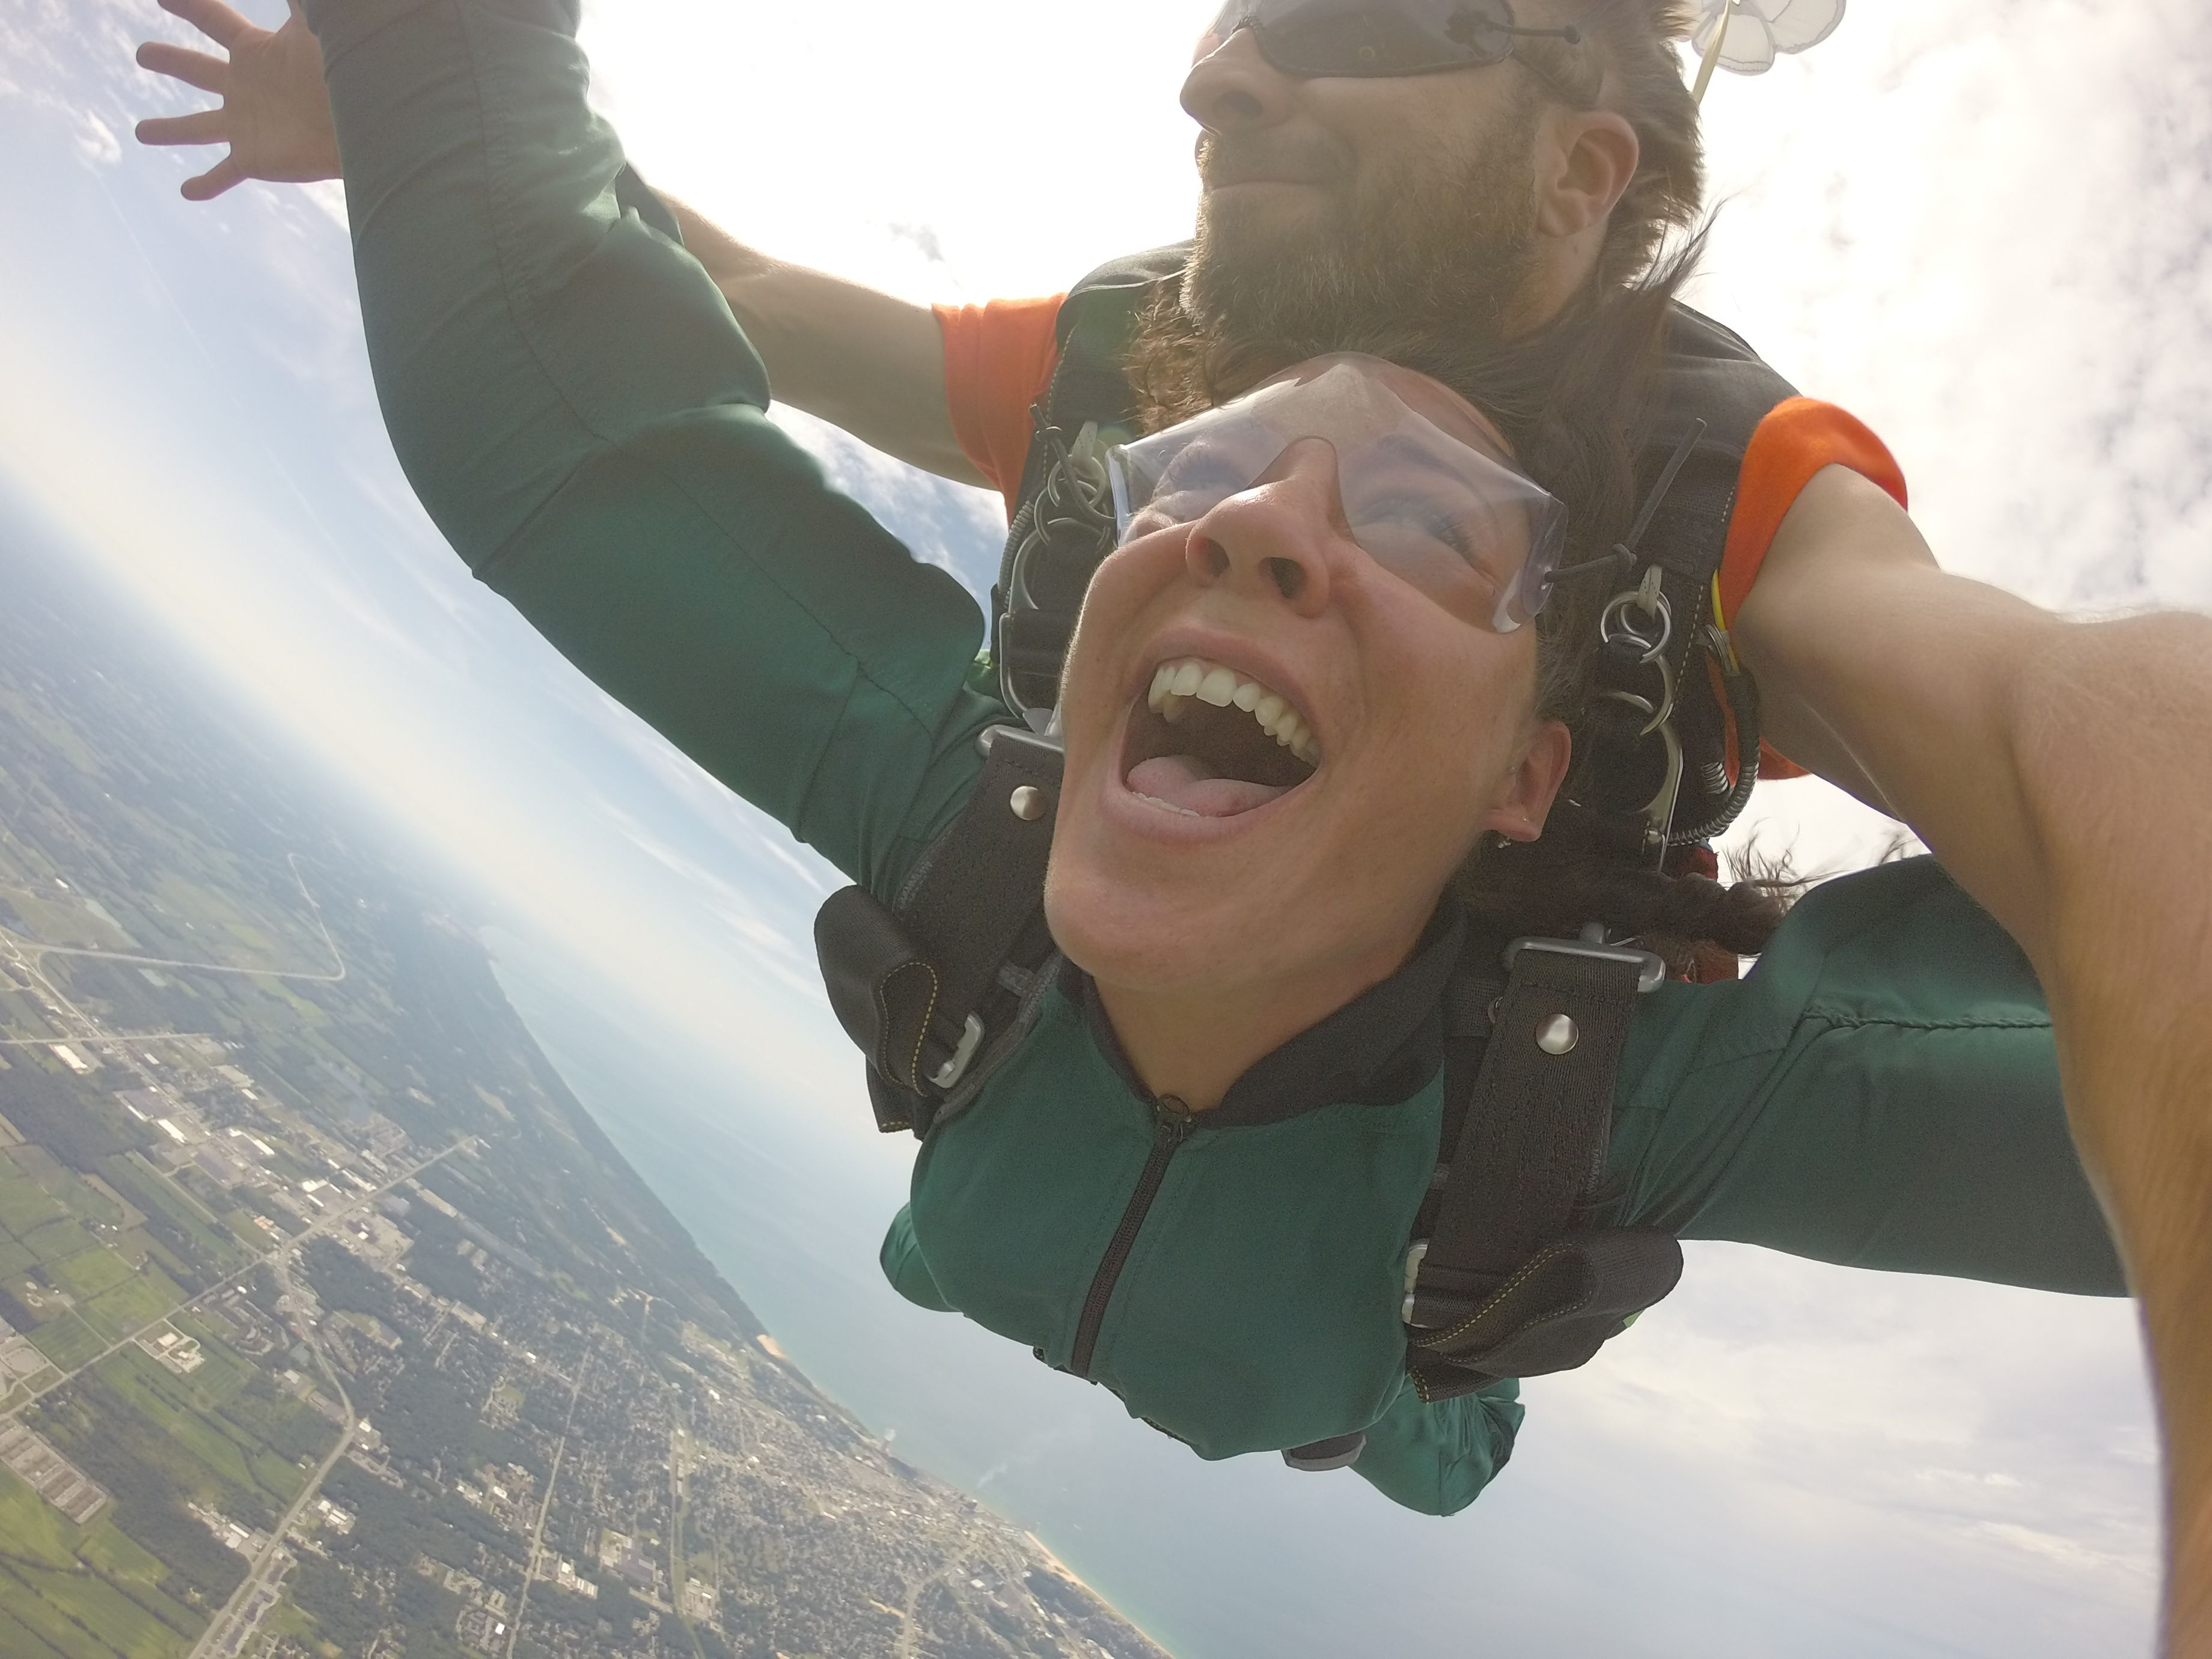 The best tandem skydive for Chicago with awesome views of